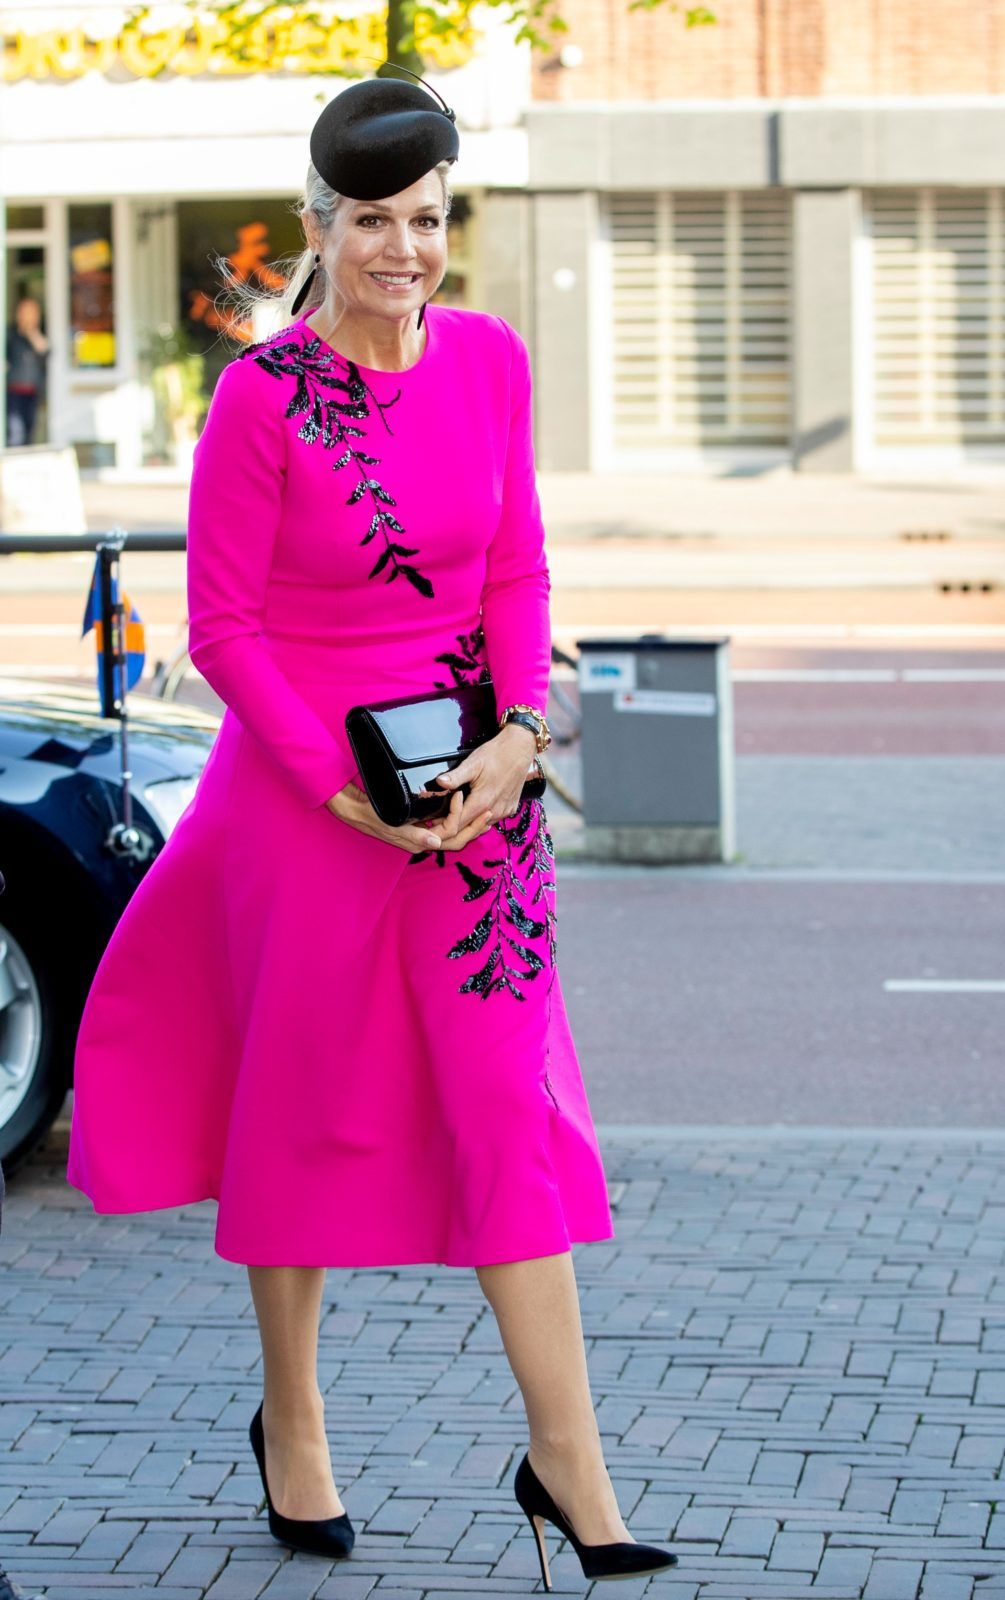 Queen Maxima was all smiles as stepped out in a colourful dress for an engagement in Utrecht on Thursday. Source: Getty